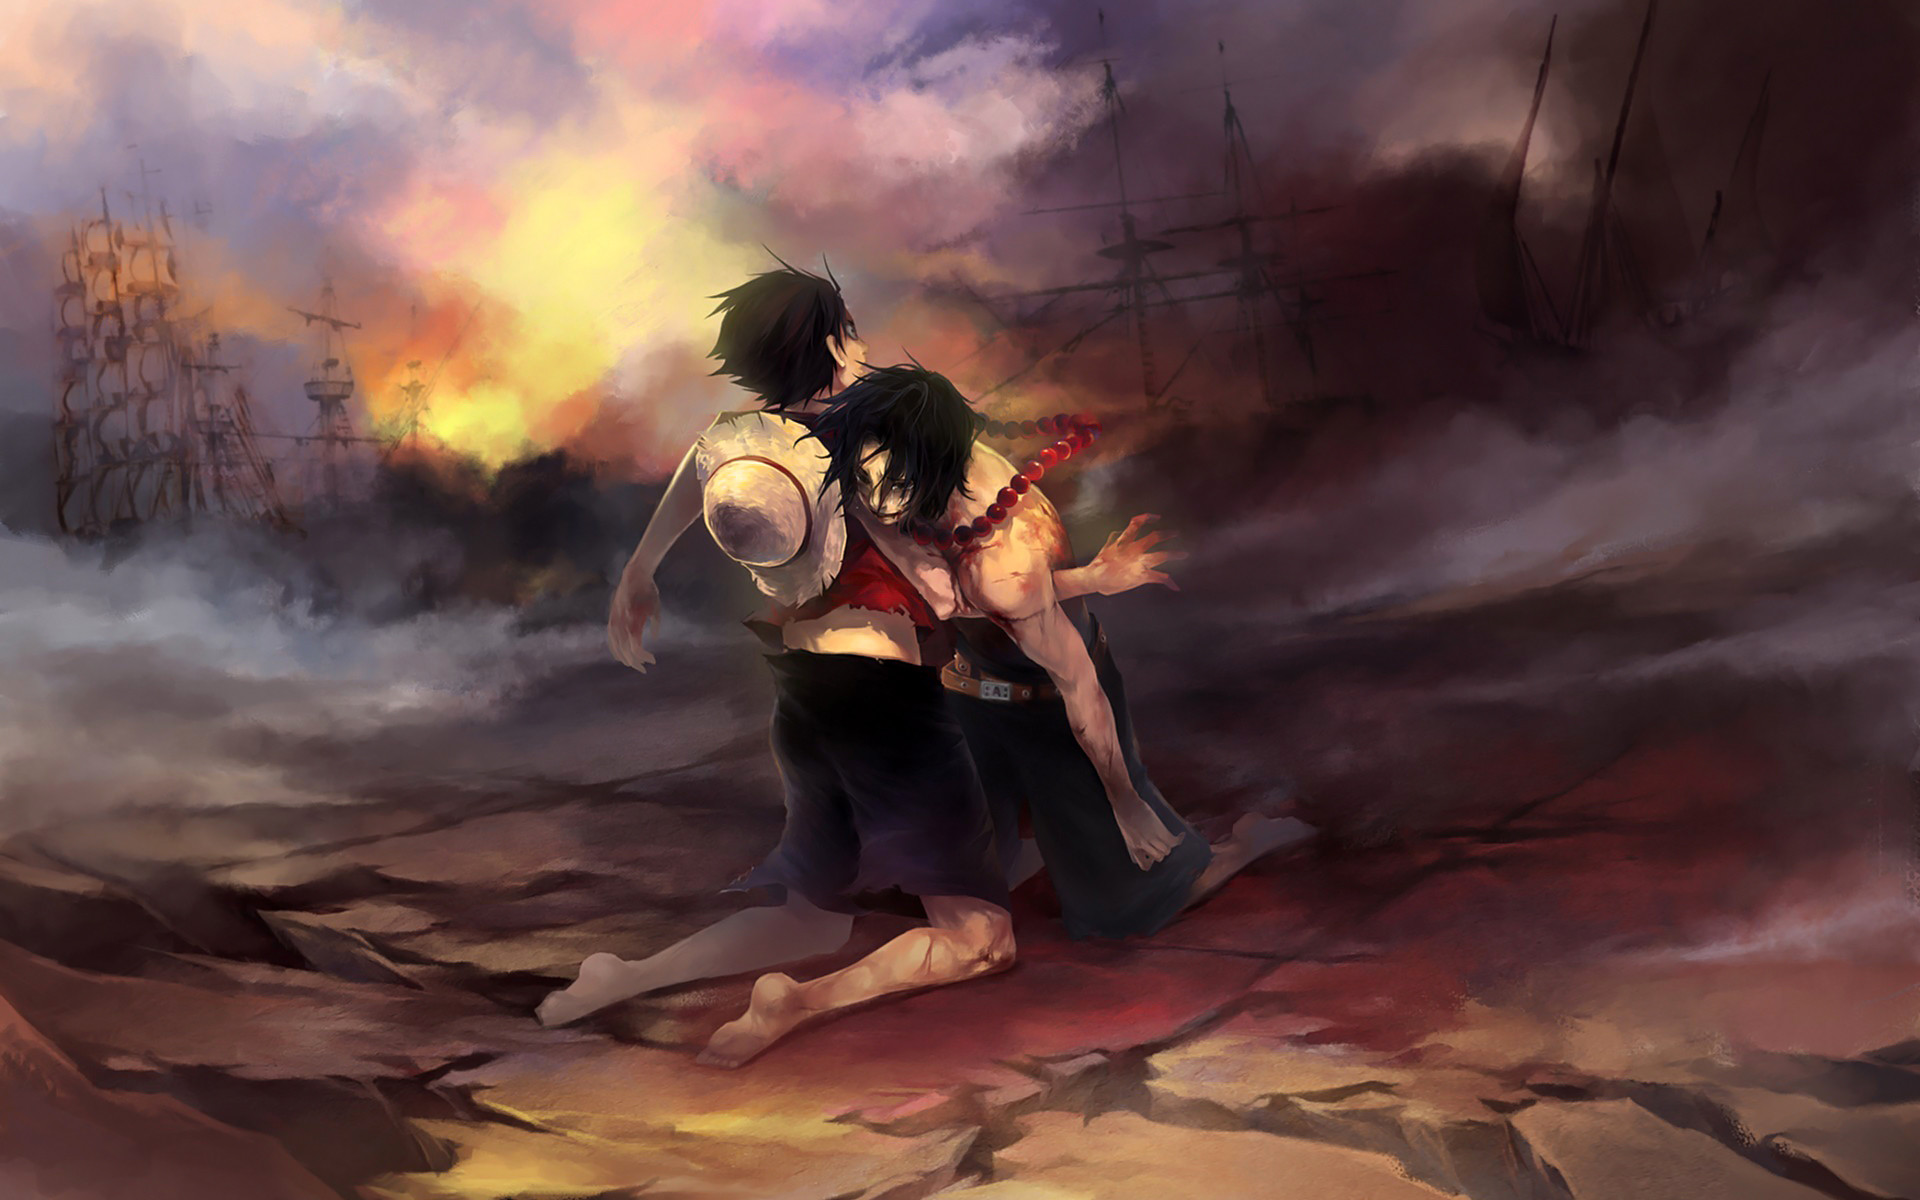 1920x1200 Anime Wallpaper: One Piece Luffy Wallpaper Picture HD Background .